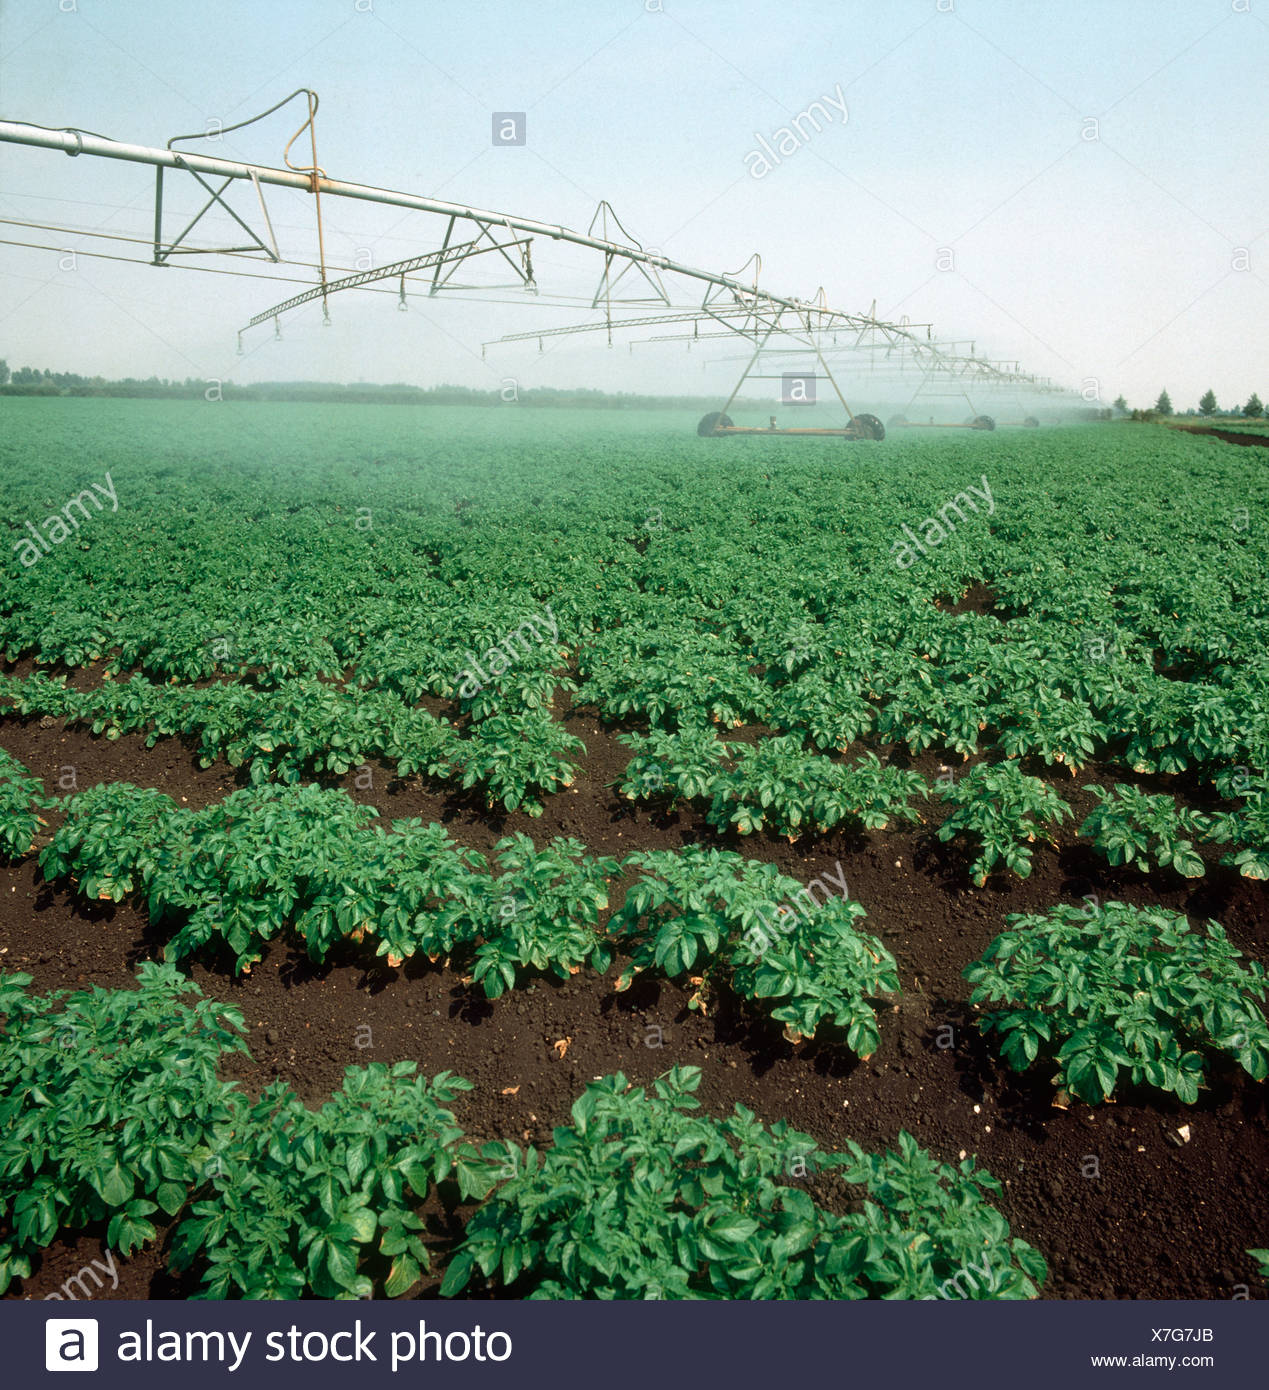 Mid term potato crop with large linear sprinkler irrigation boom in operation - Stock Image